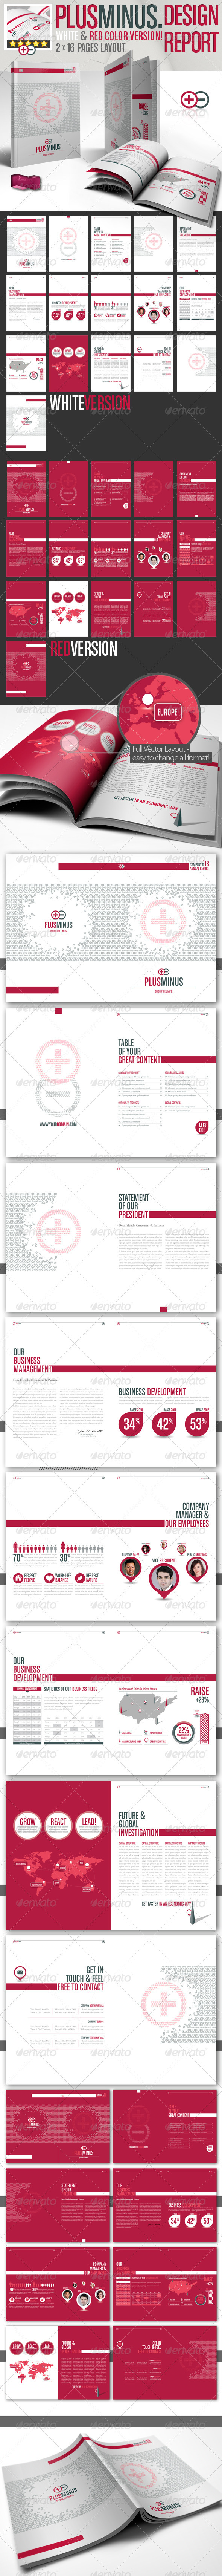 Corporate Brochure PLUSMINUS A4 // 2 Color Version - Corporate Brochures